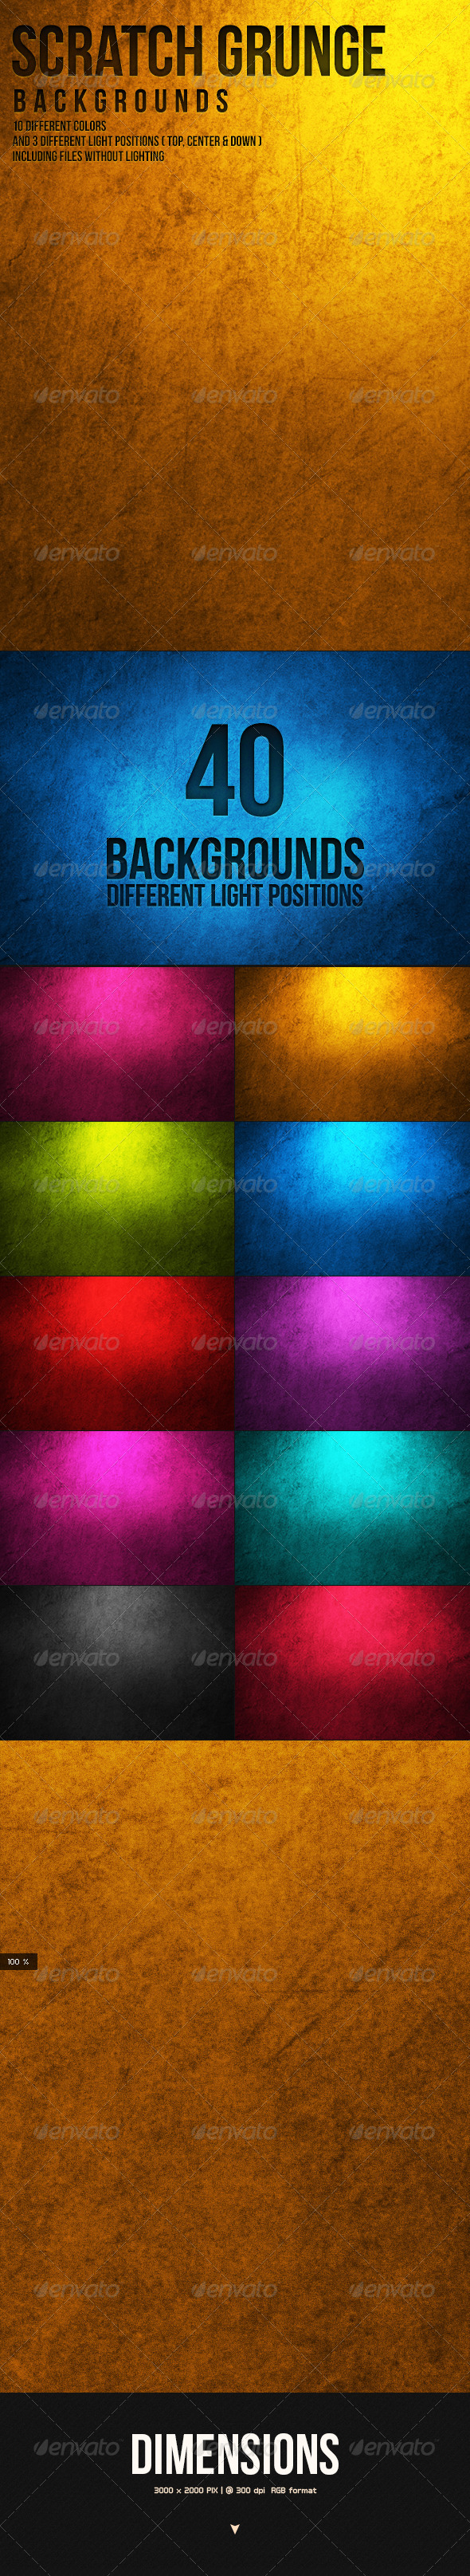 Scratch Grunge Background - Urban Backgrounds